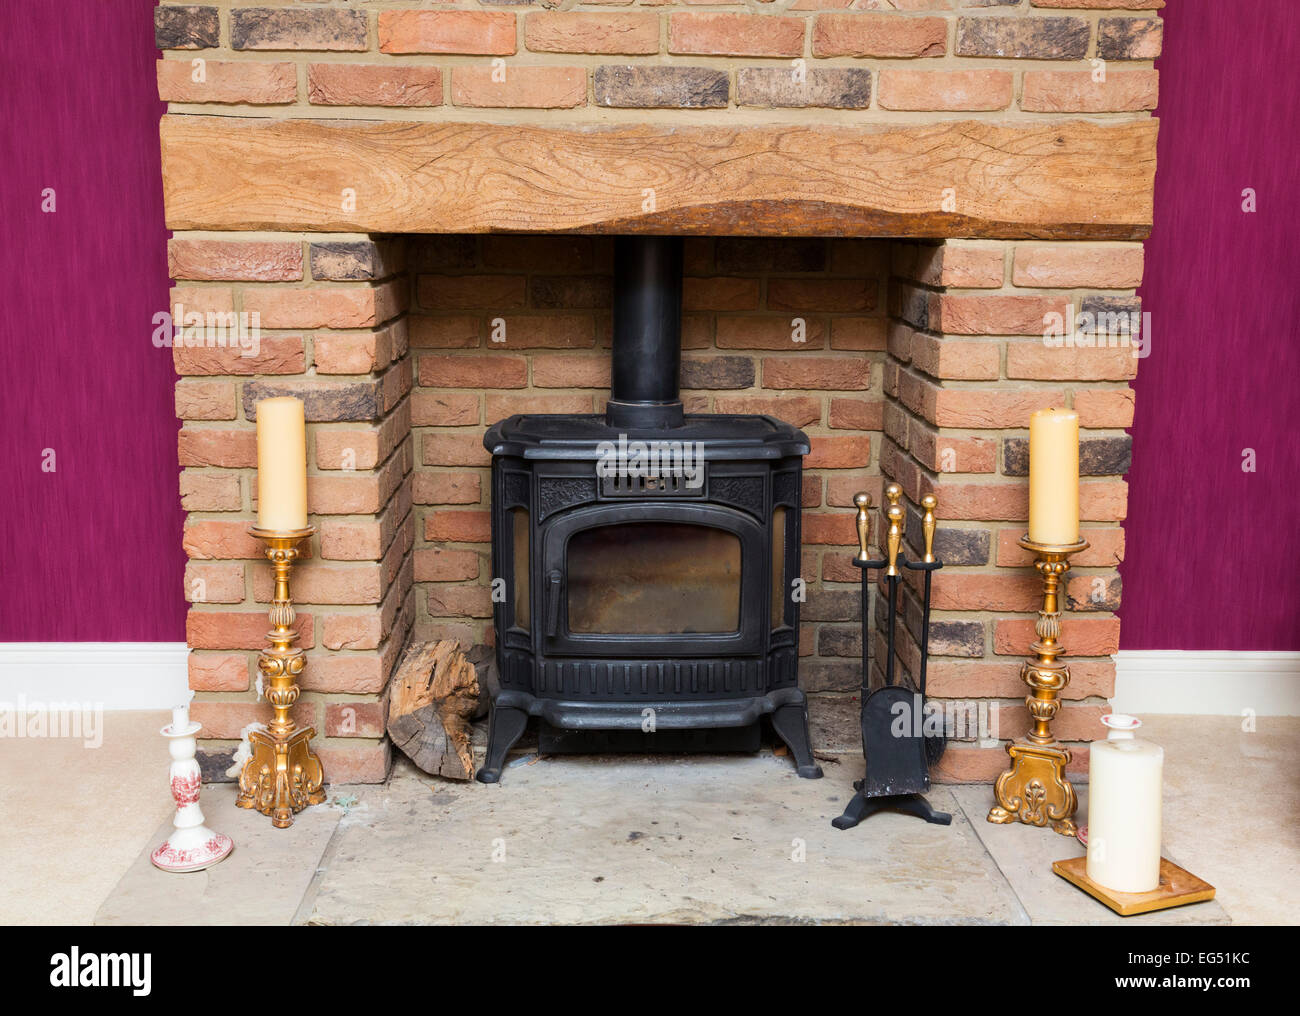 wood burning fireplace stock photos u0026 wood burning fireplace stock